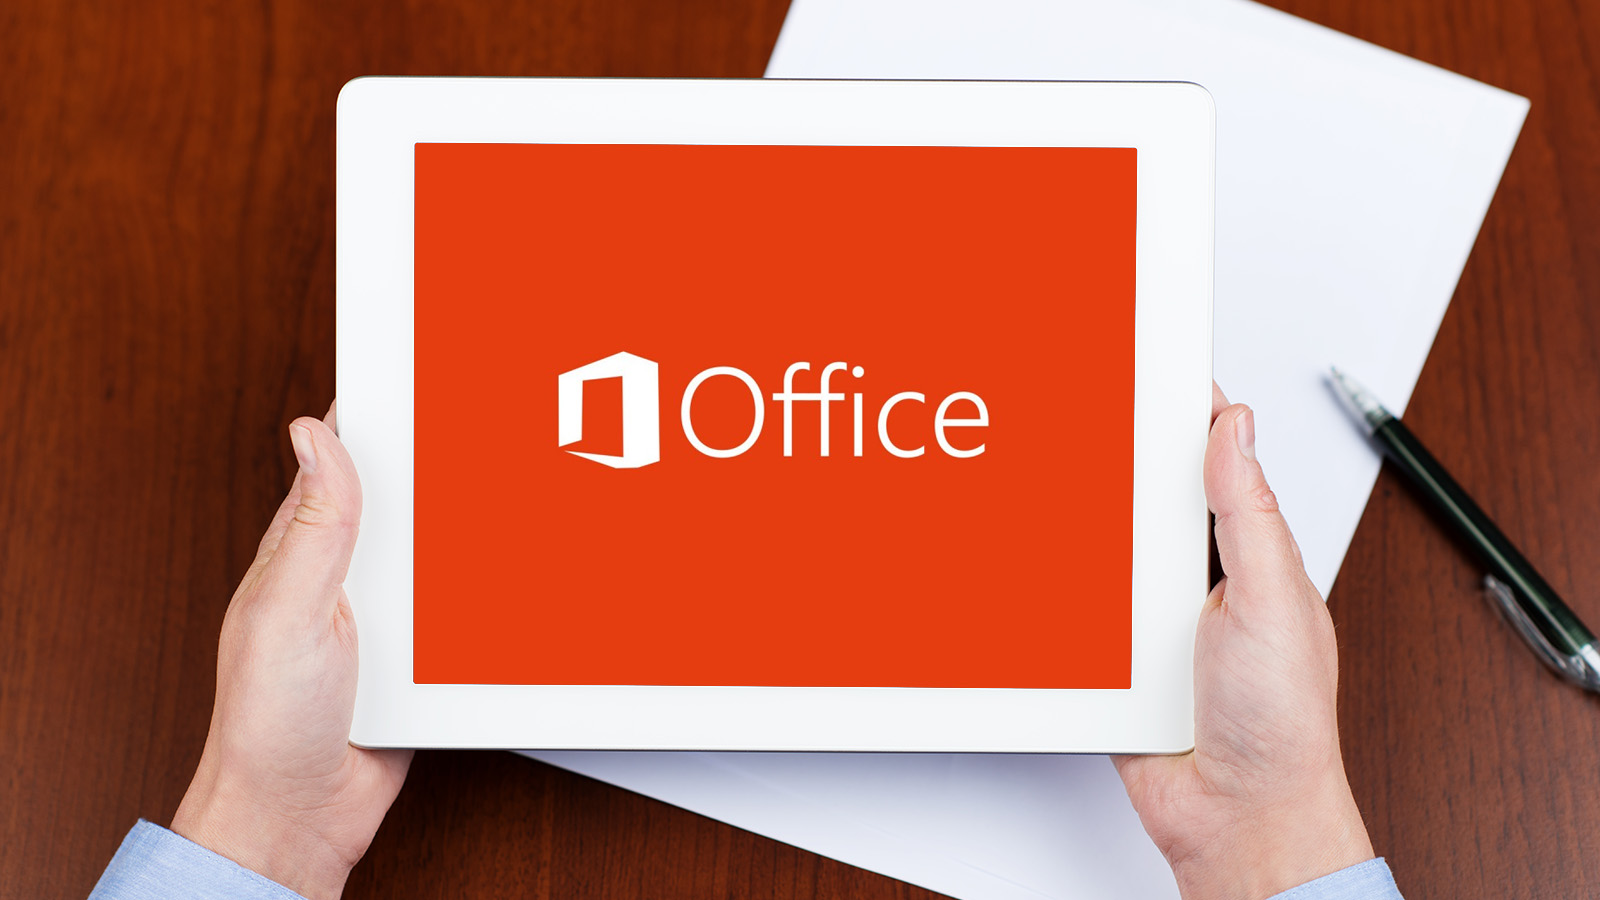 office-ipad-microsoft